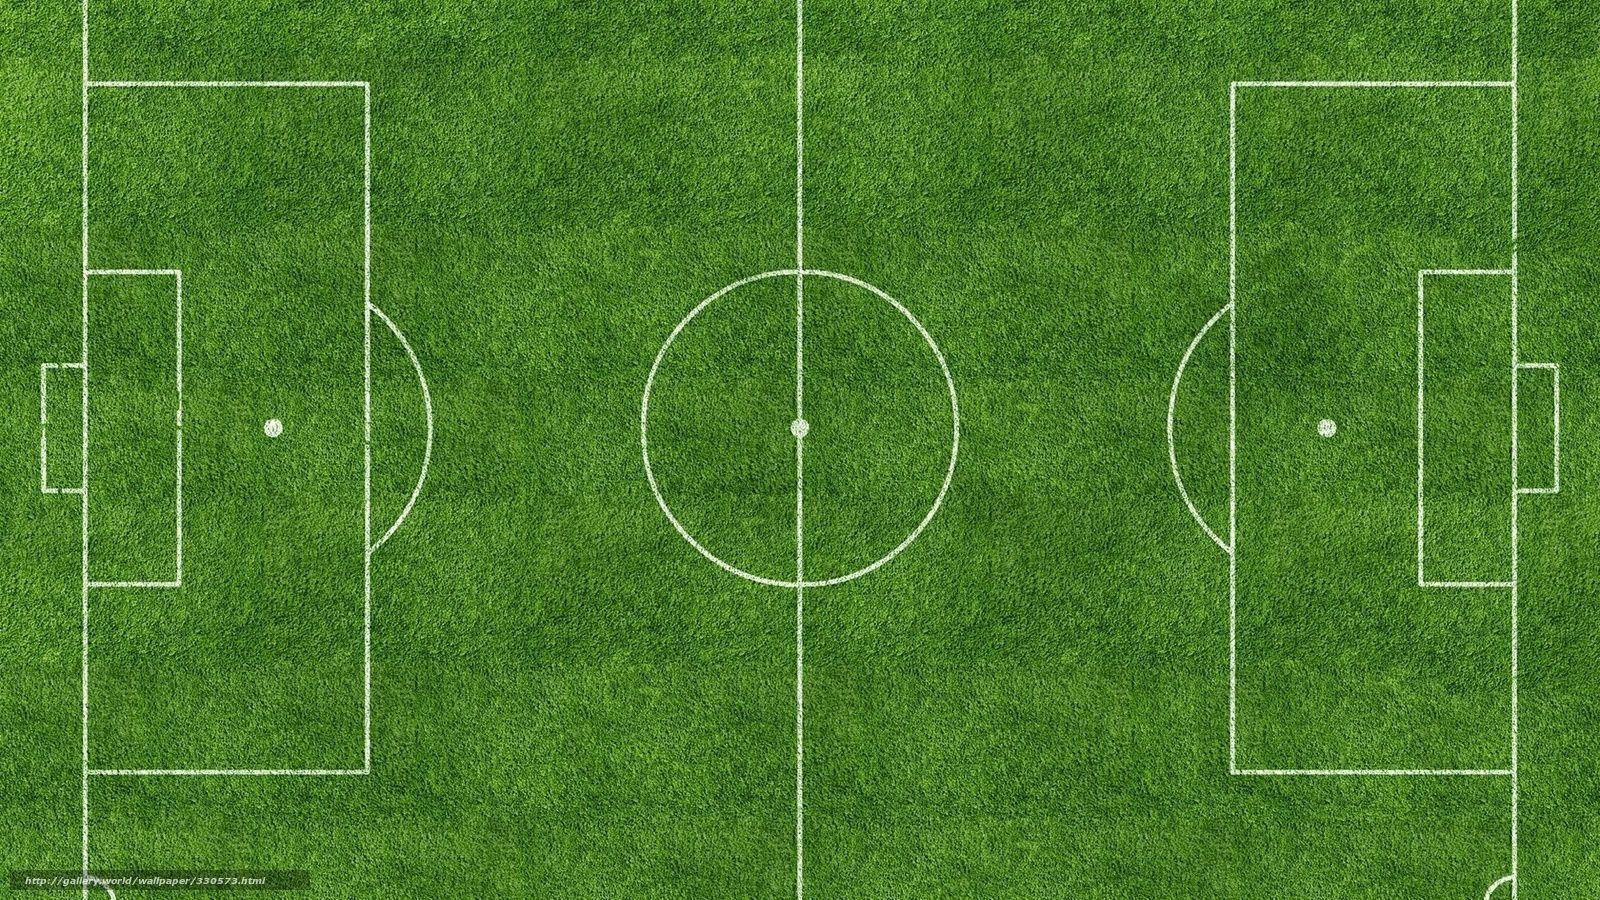 Download wallpapers football field, football, field, backgrounds